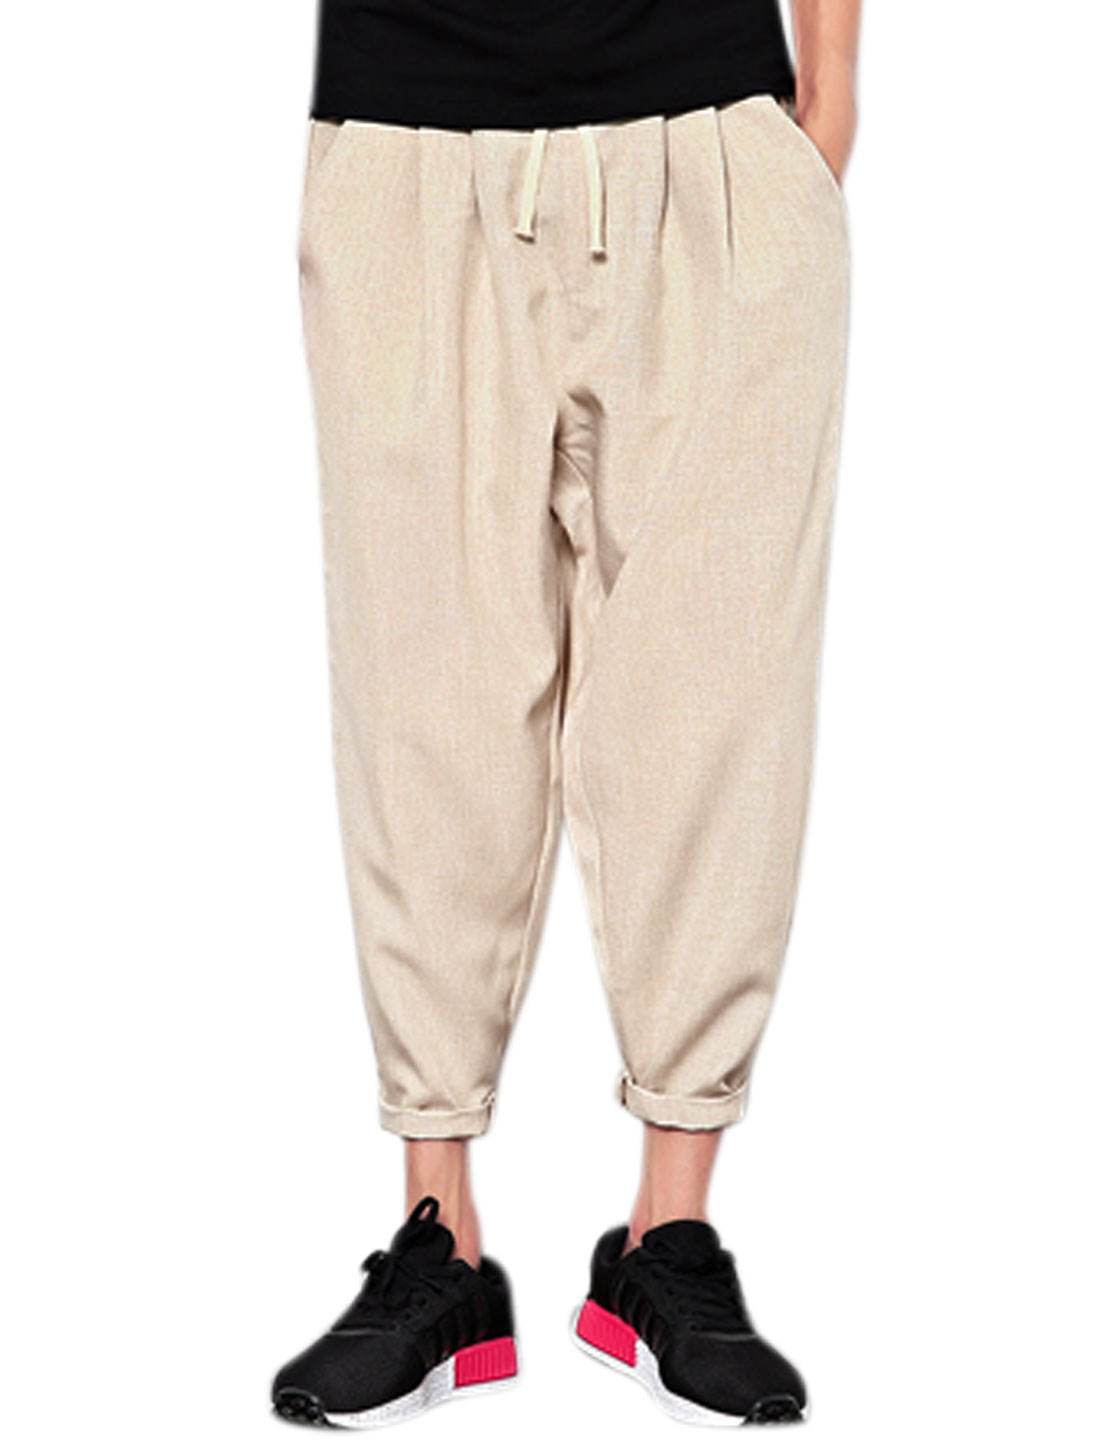 Men Drawstring Elastic Waist Pockets Tappered Cropped Pants Beige W30